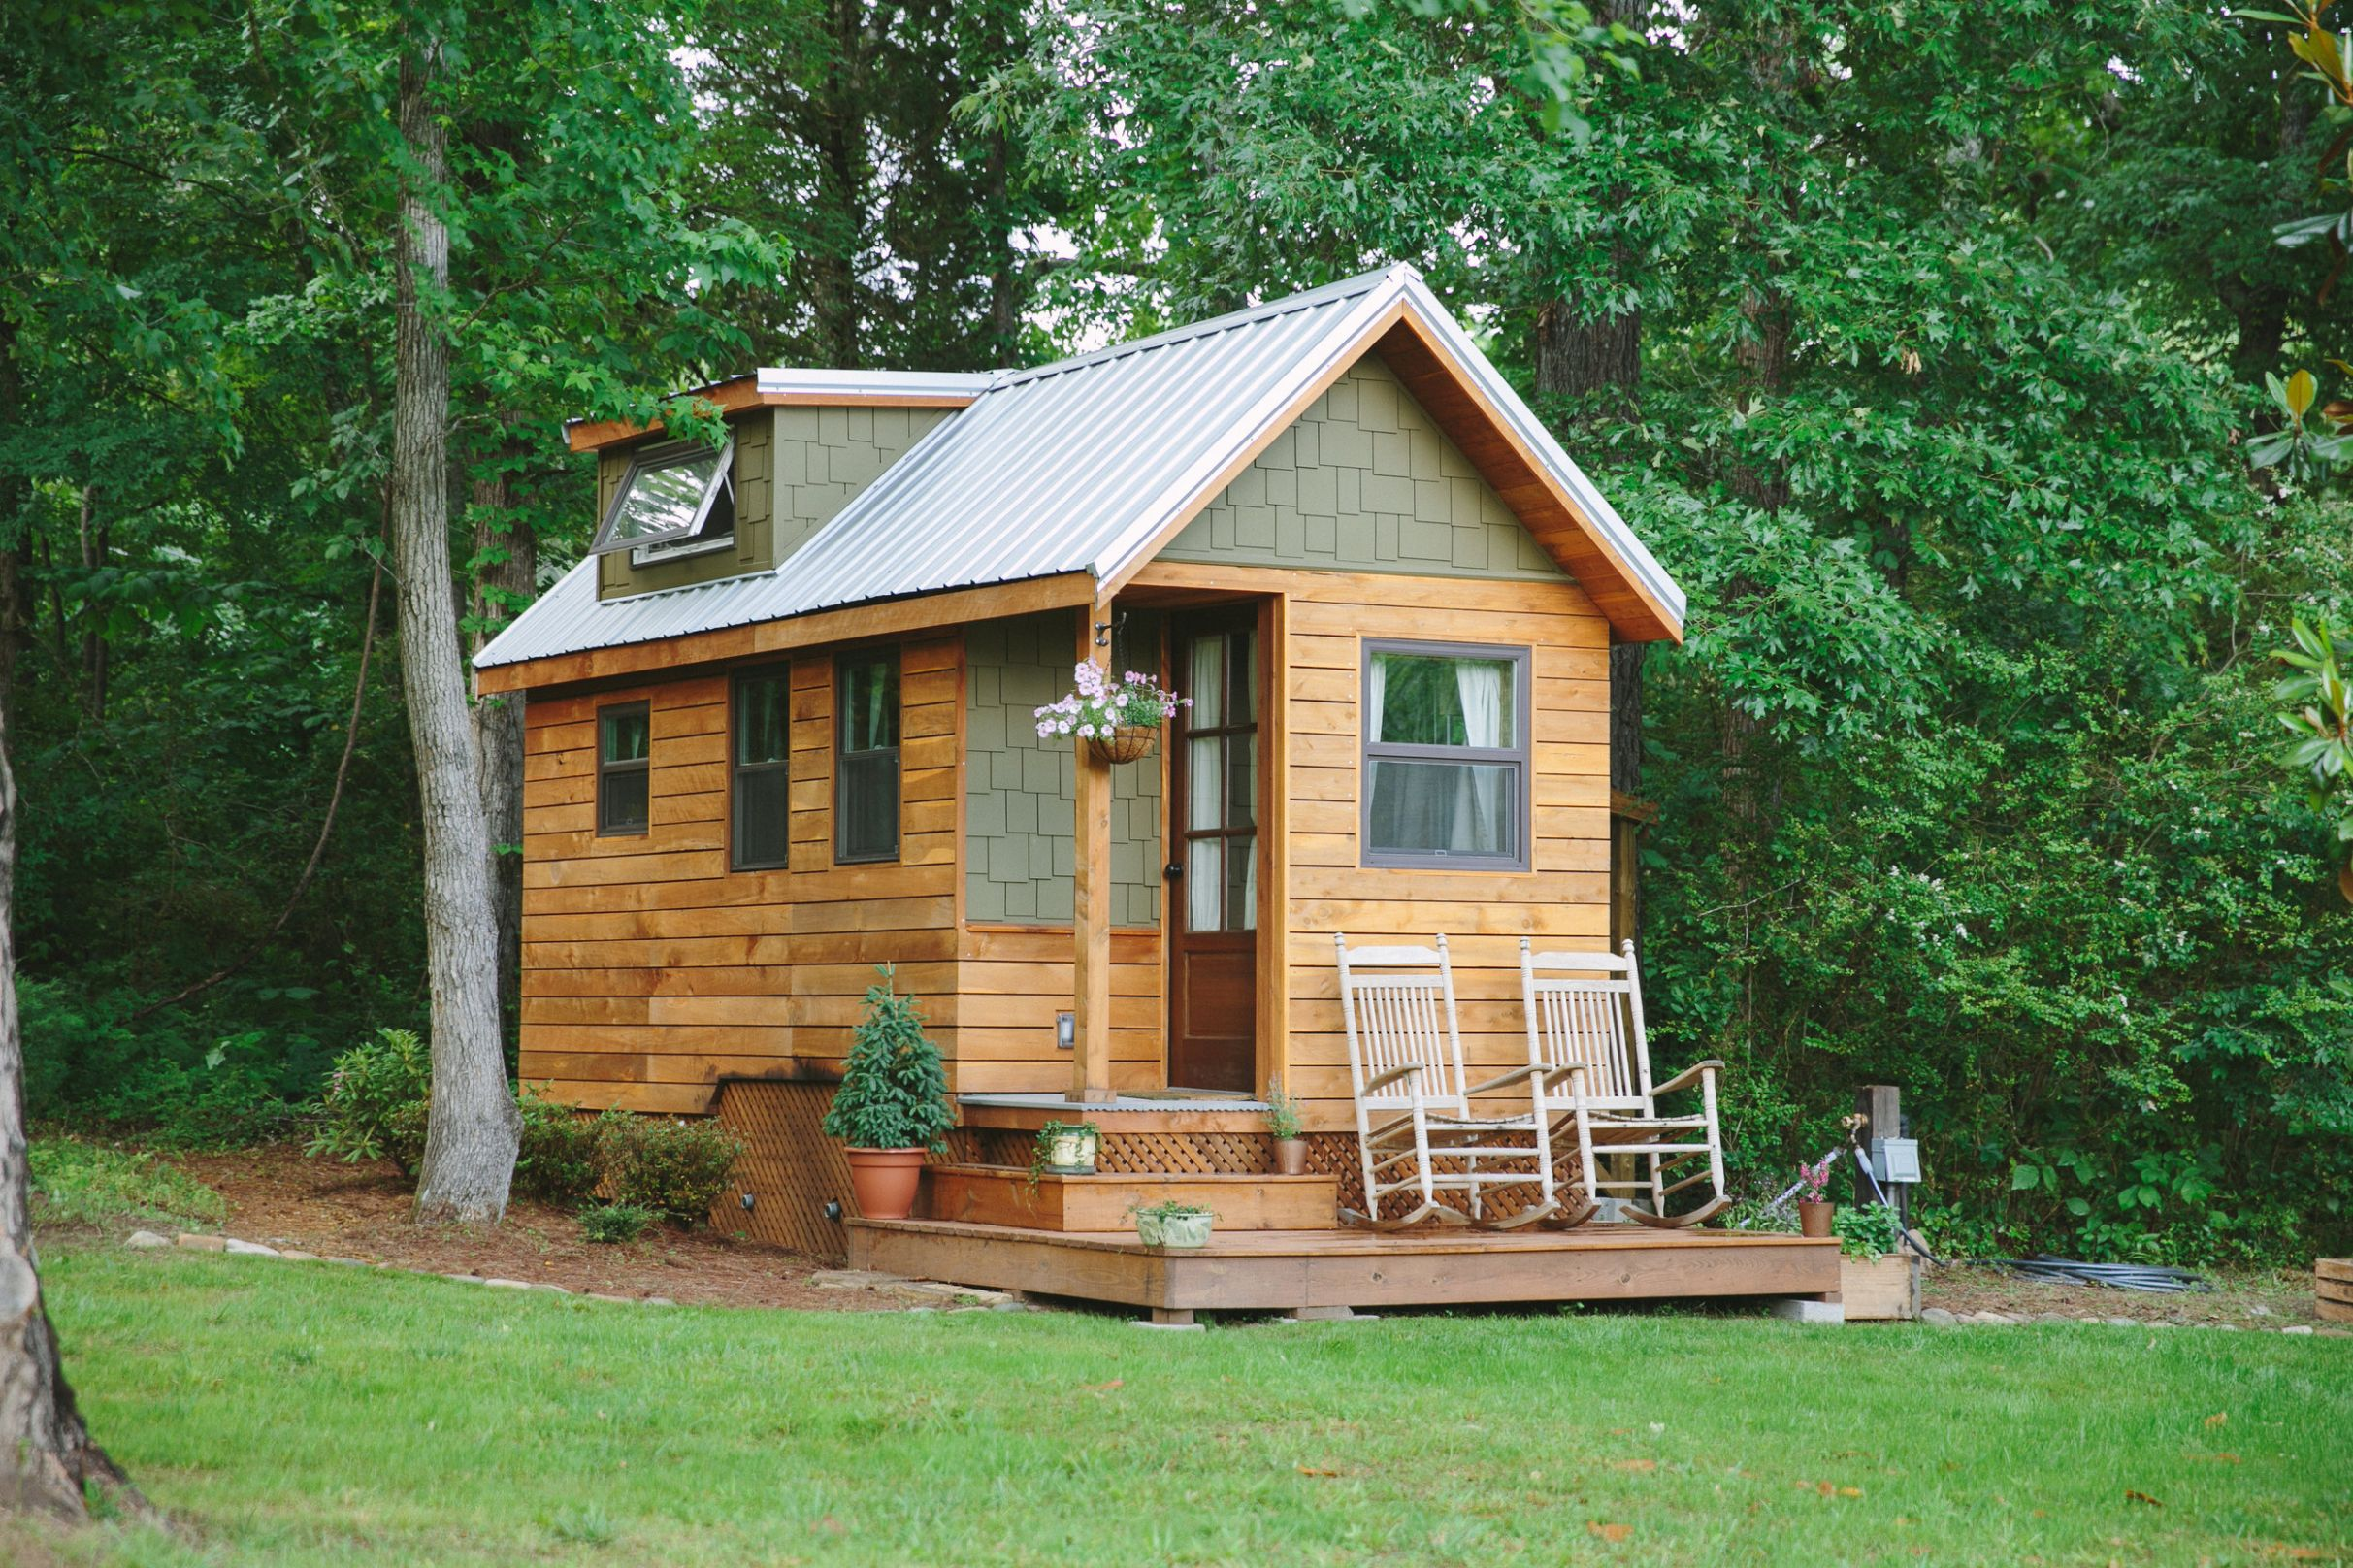 Wind River Tiny Homes - tiny house rent to own